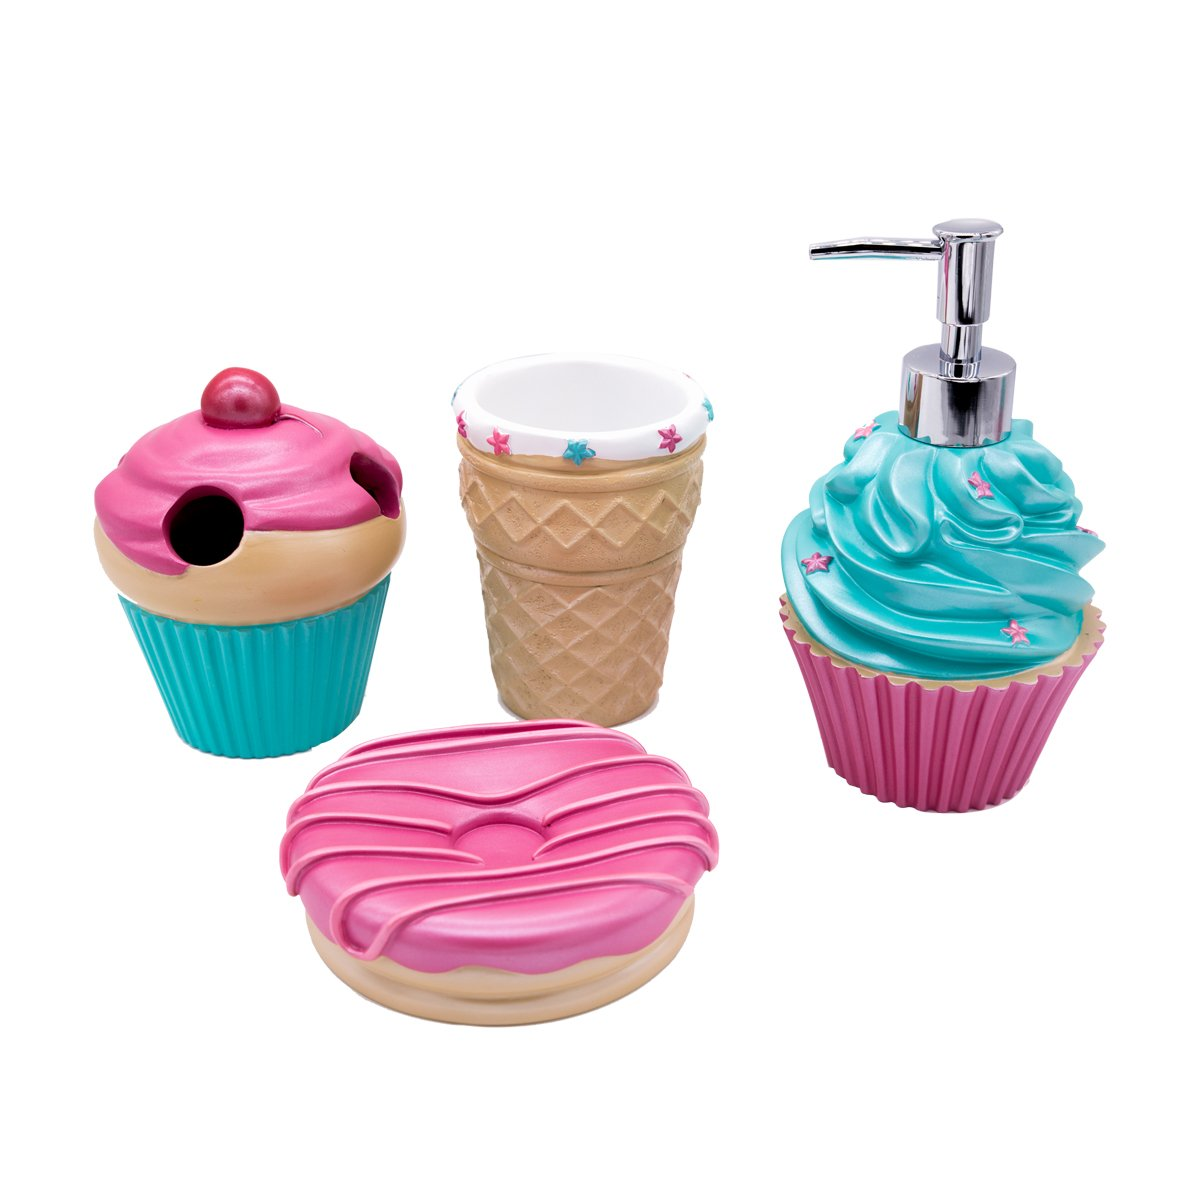 Bathpro 4-PIECE Ice-cream Bathroom Accessories Completes with Ice Cream Cone Lotion/Soap Dispenser,Cone Bath Cup/Tumbler,Doughnut Soap Dish,Milkshake Toothbrush Holder for Kids Bath Train (Pink) Outstanding Household